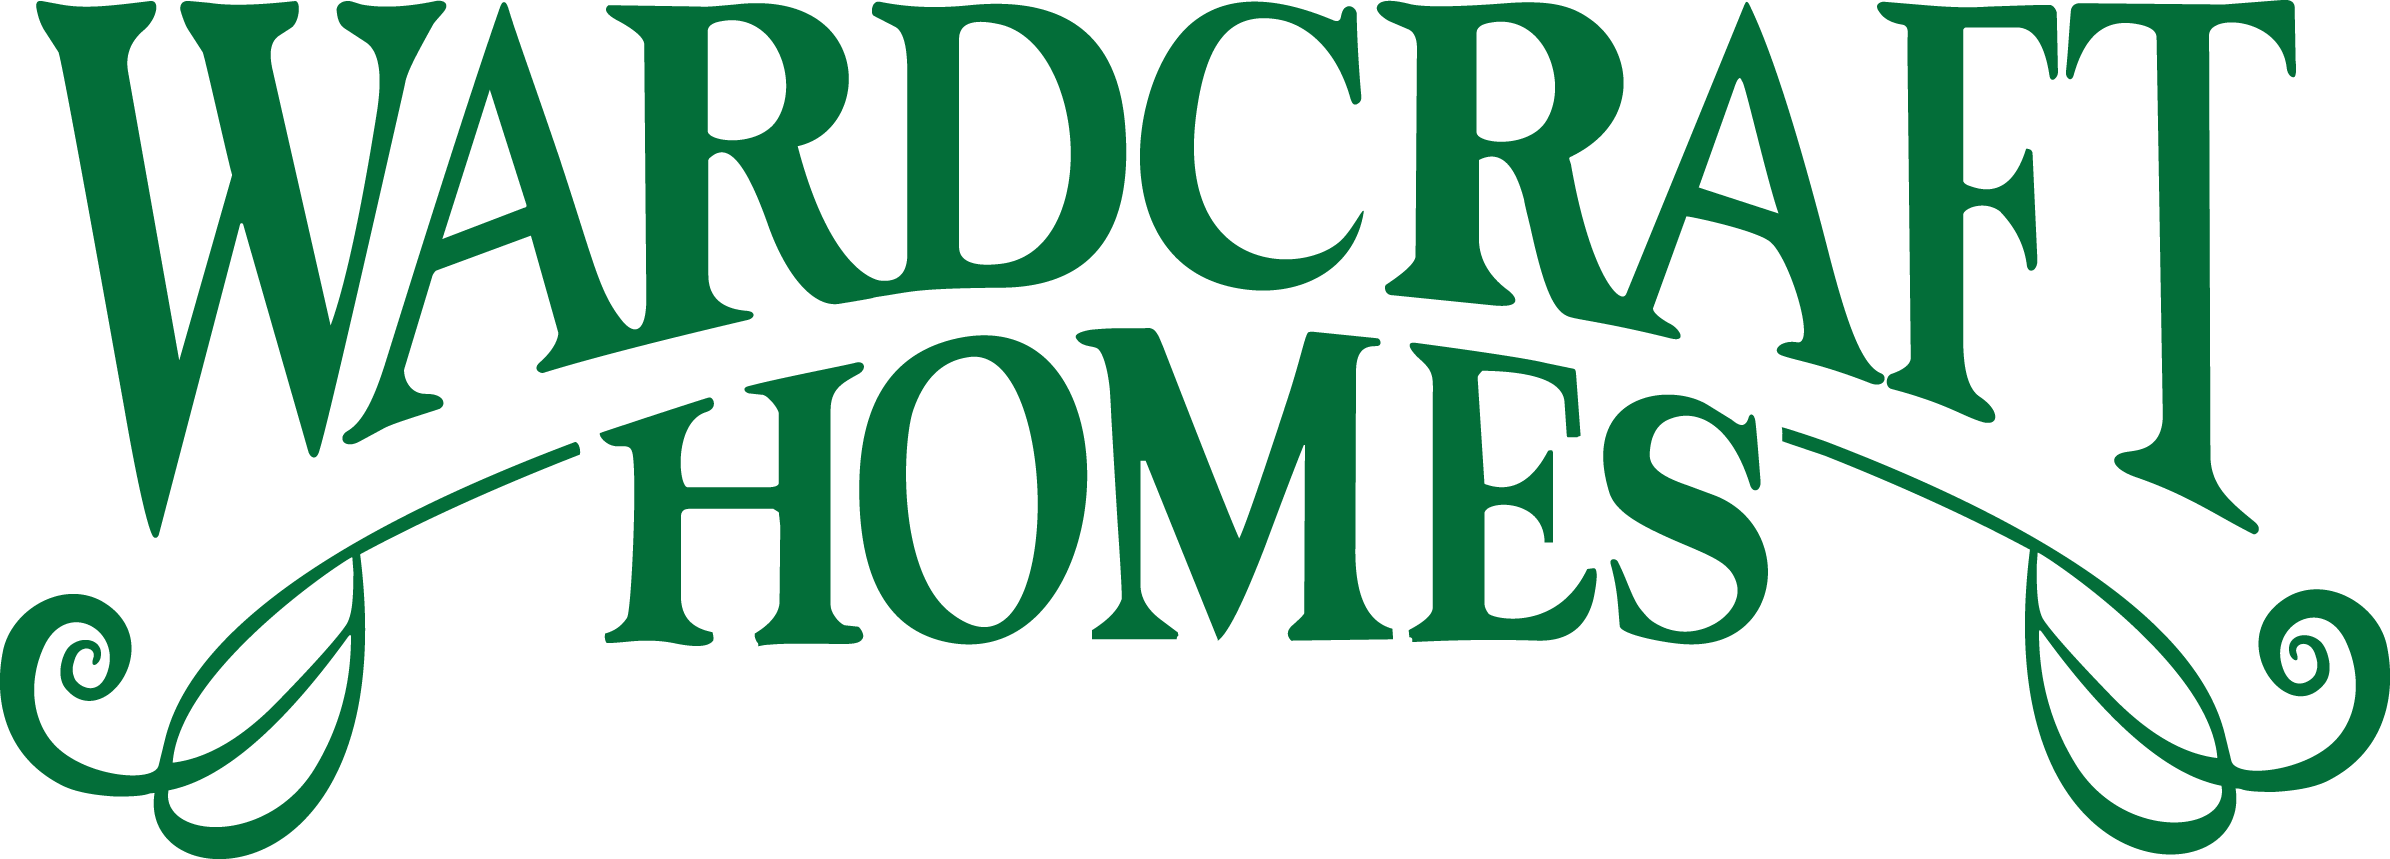 Wardcraft Homes